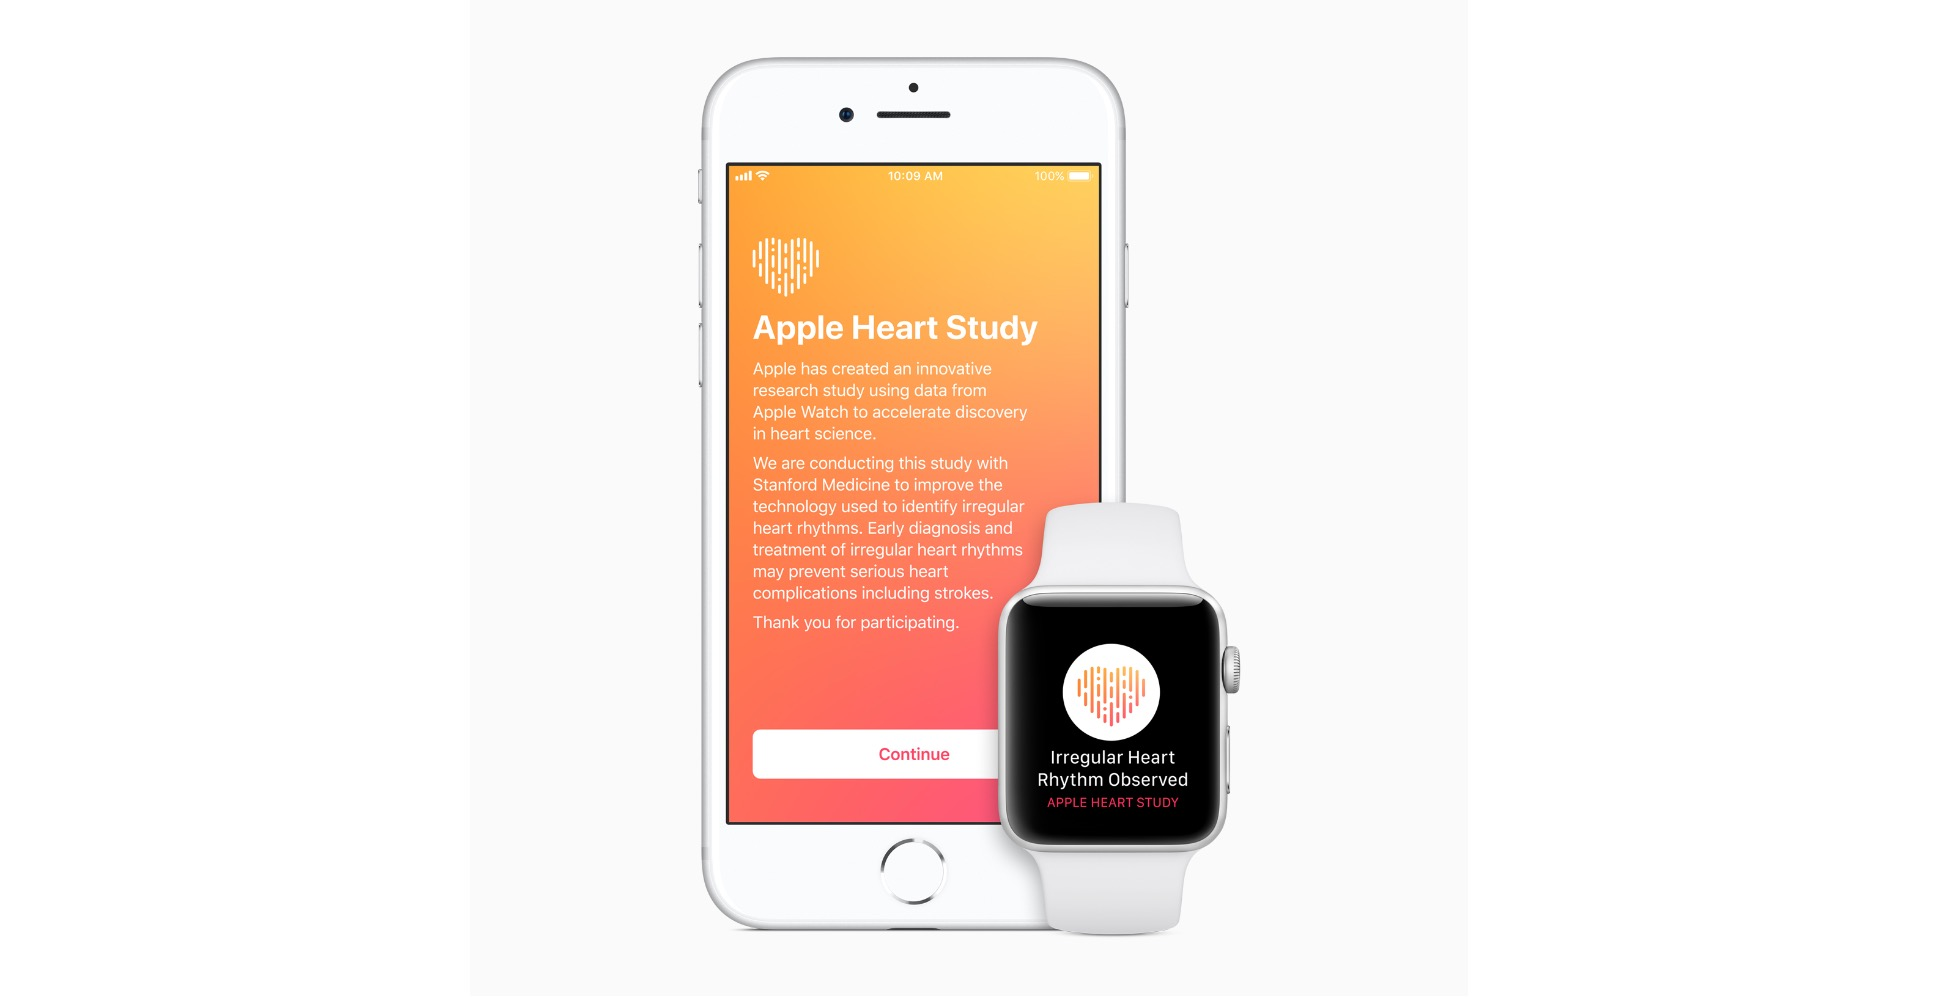 Stanford Medicine Presents Results of the Apple Heart Study